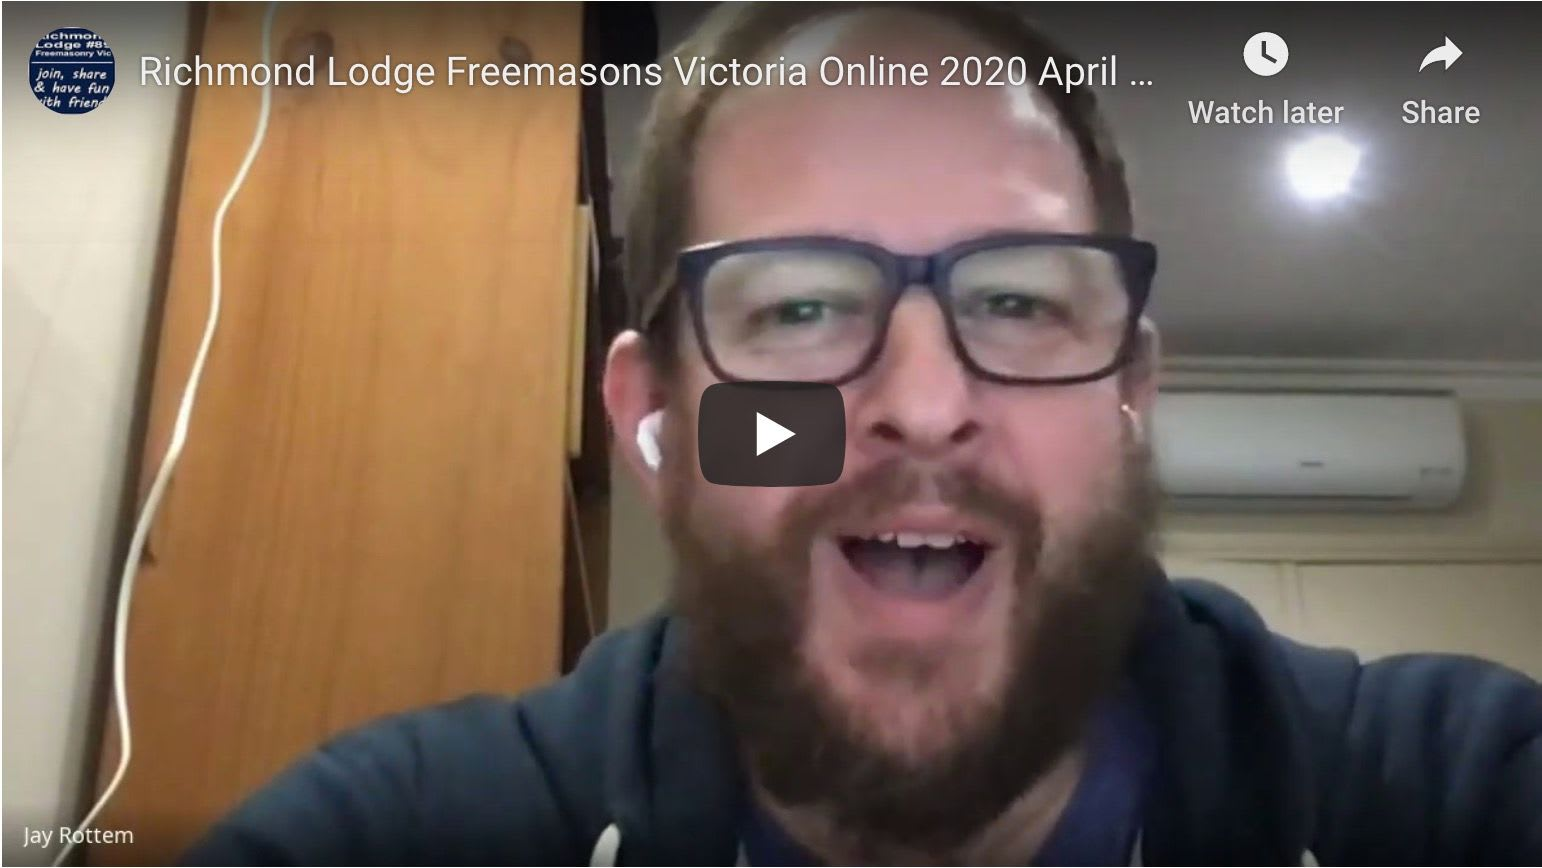 Richmond Lodge Online April 21, 2020 - list of online lodge meetings and the Order of the Amaranth